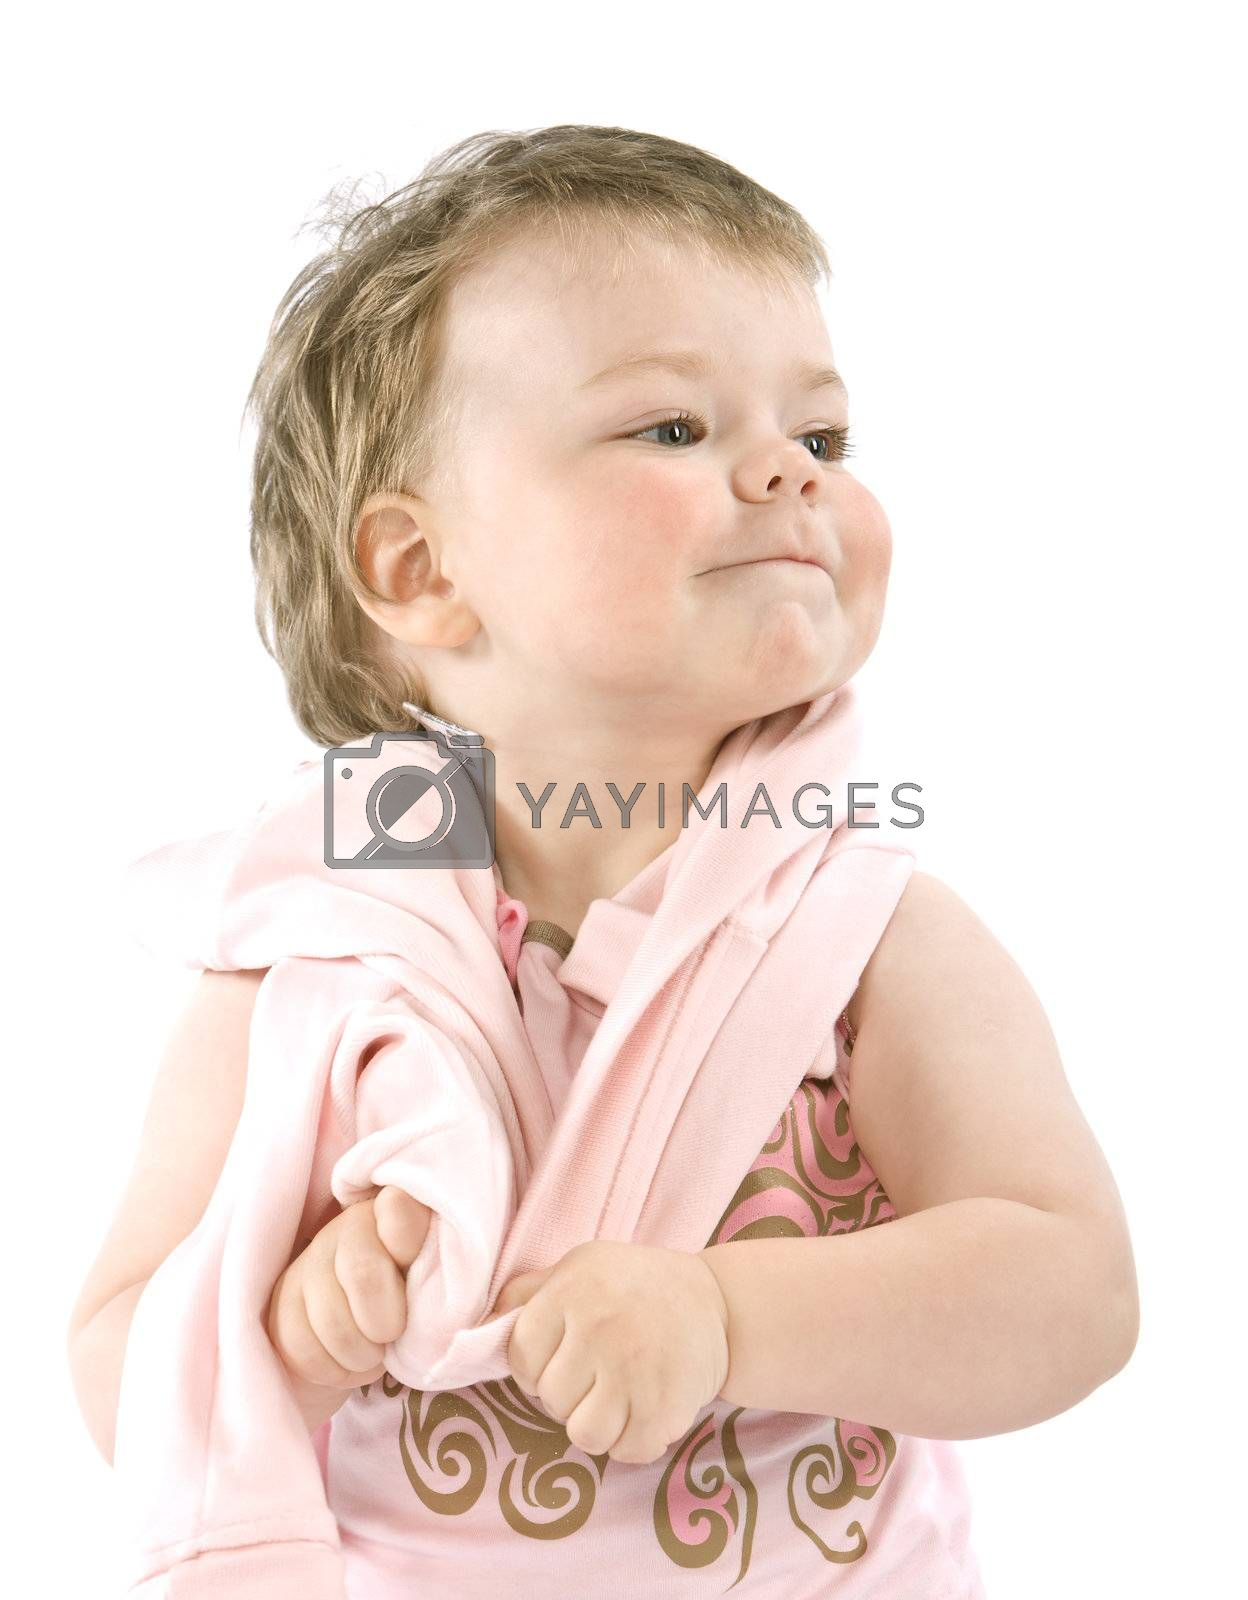 Child with pink jacket. Isolated on white